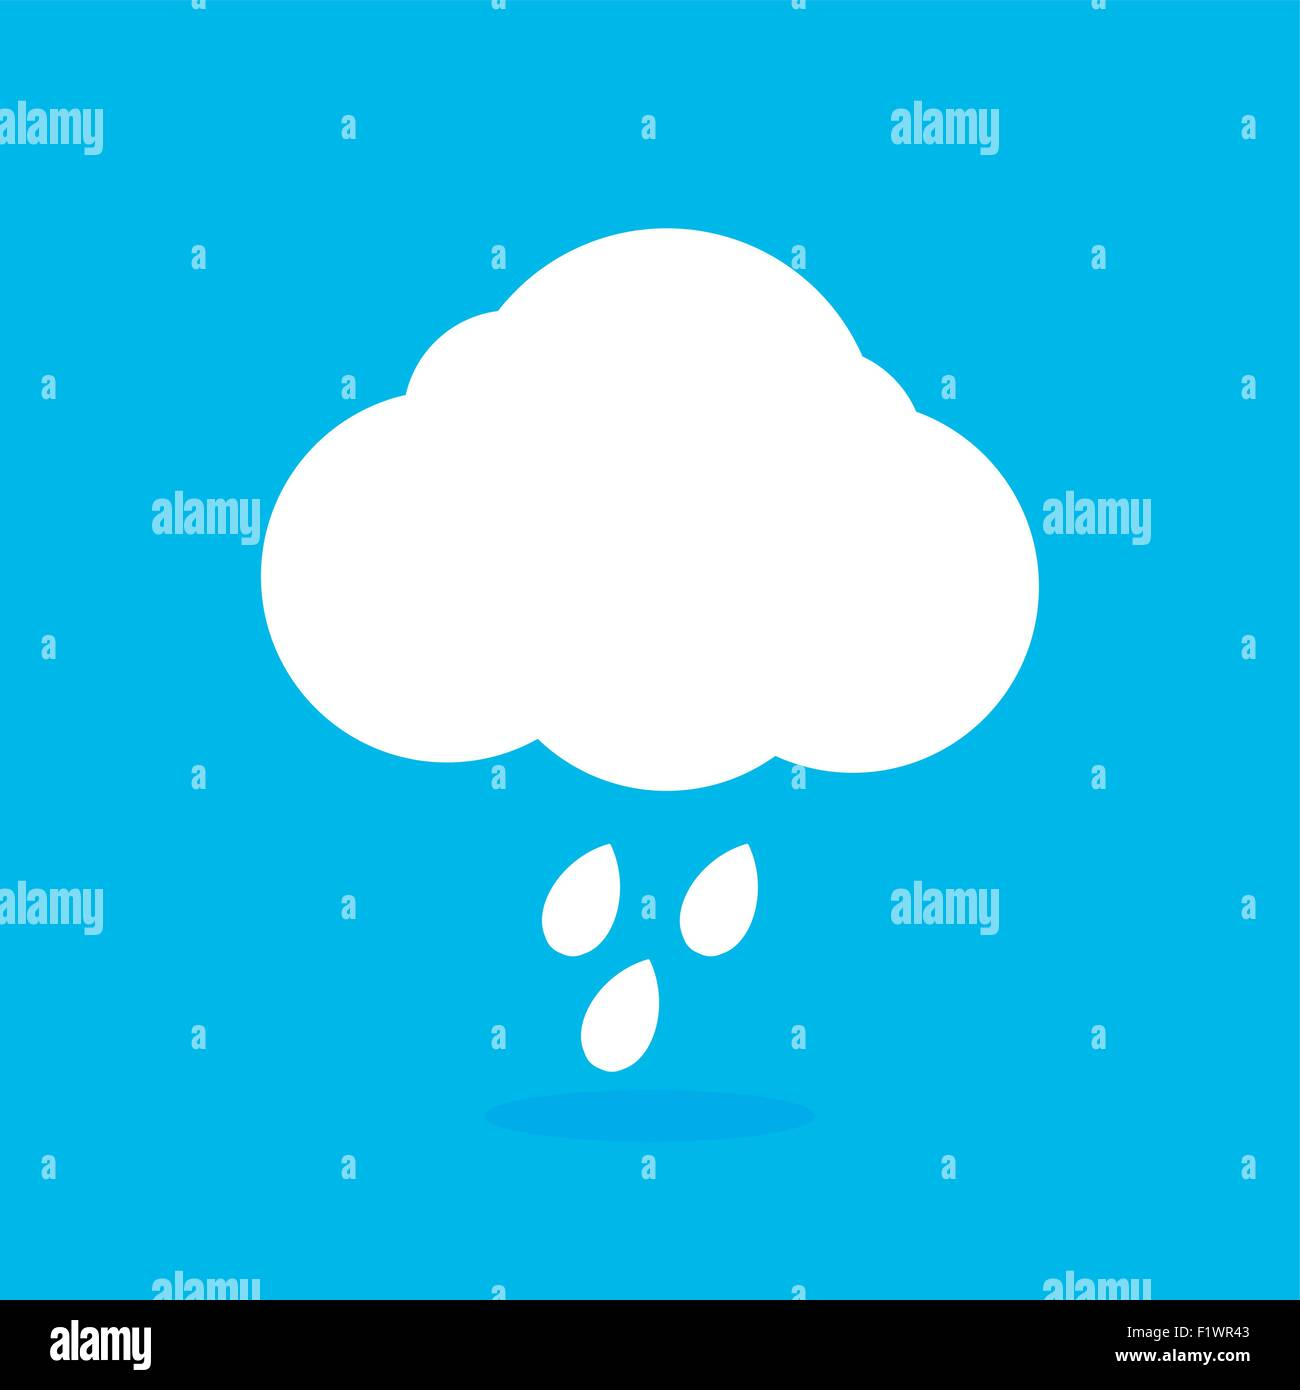 cloud icon - Stock Image